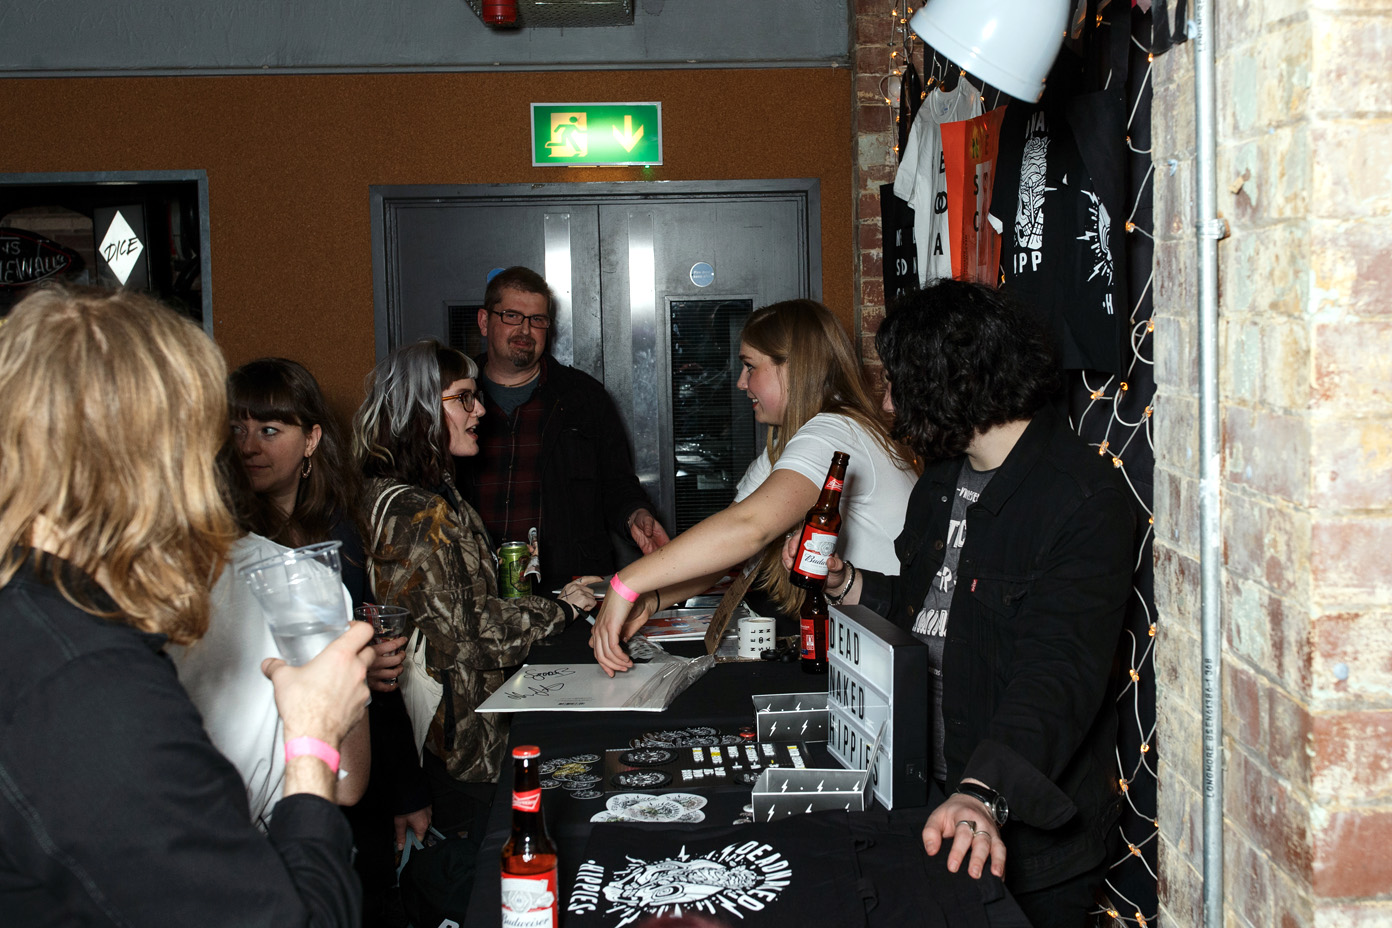 Nelson Can meeting fans at the merch stand after the show